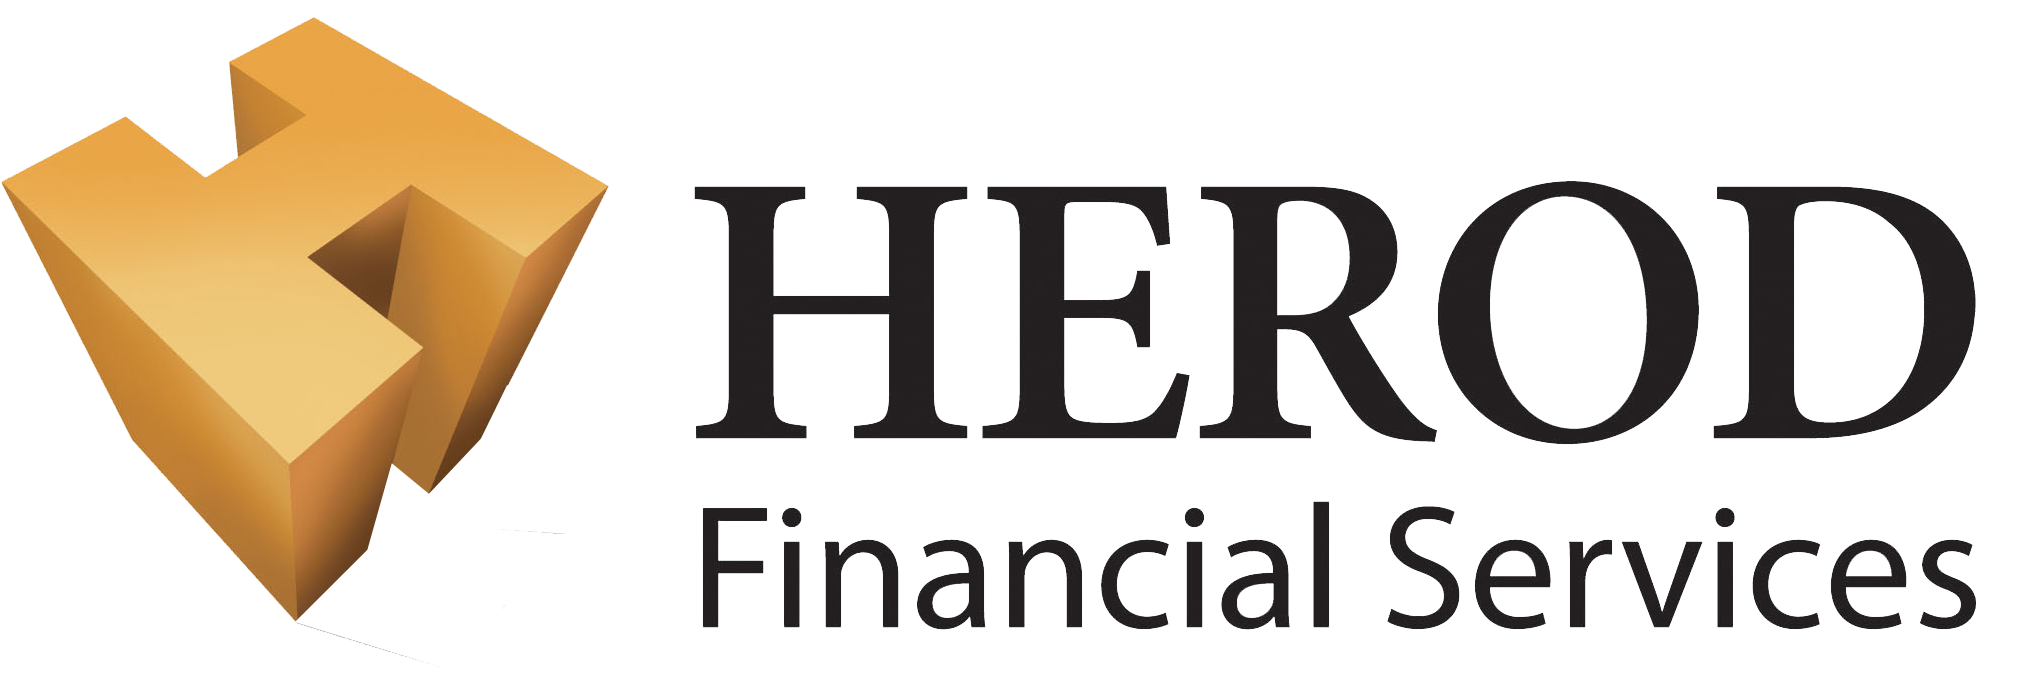 Herod Financial Services logo